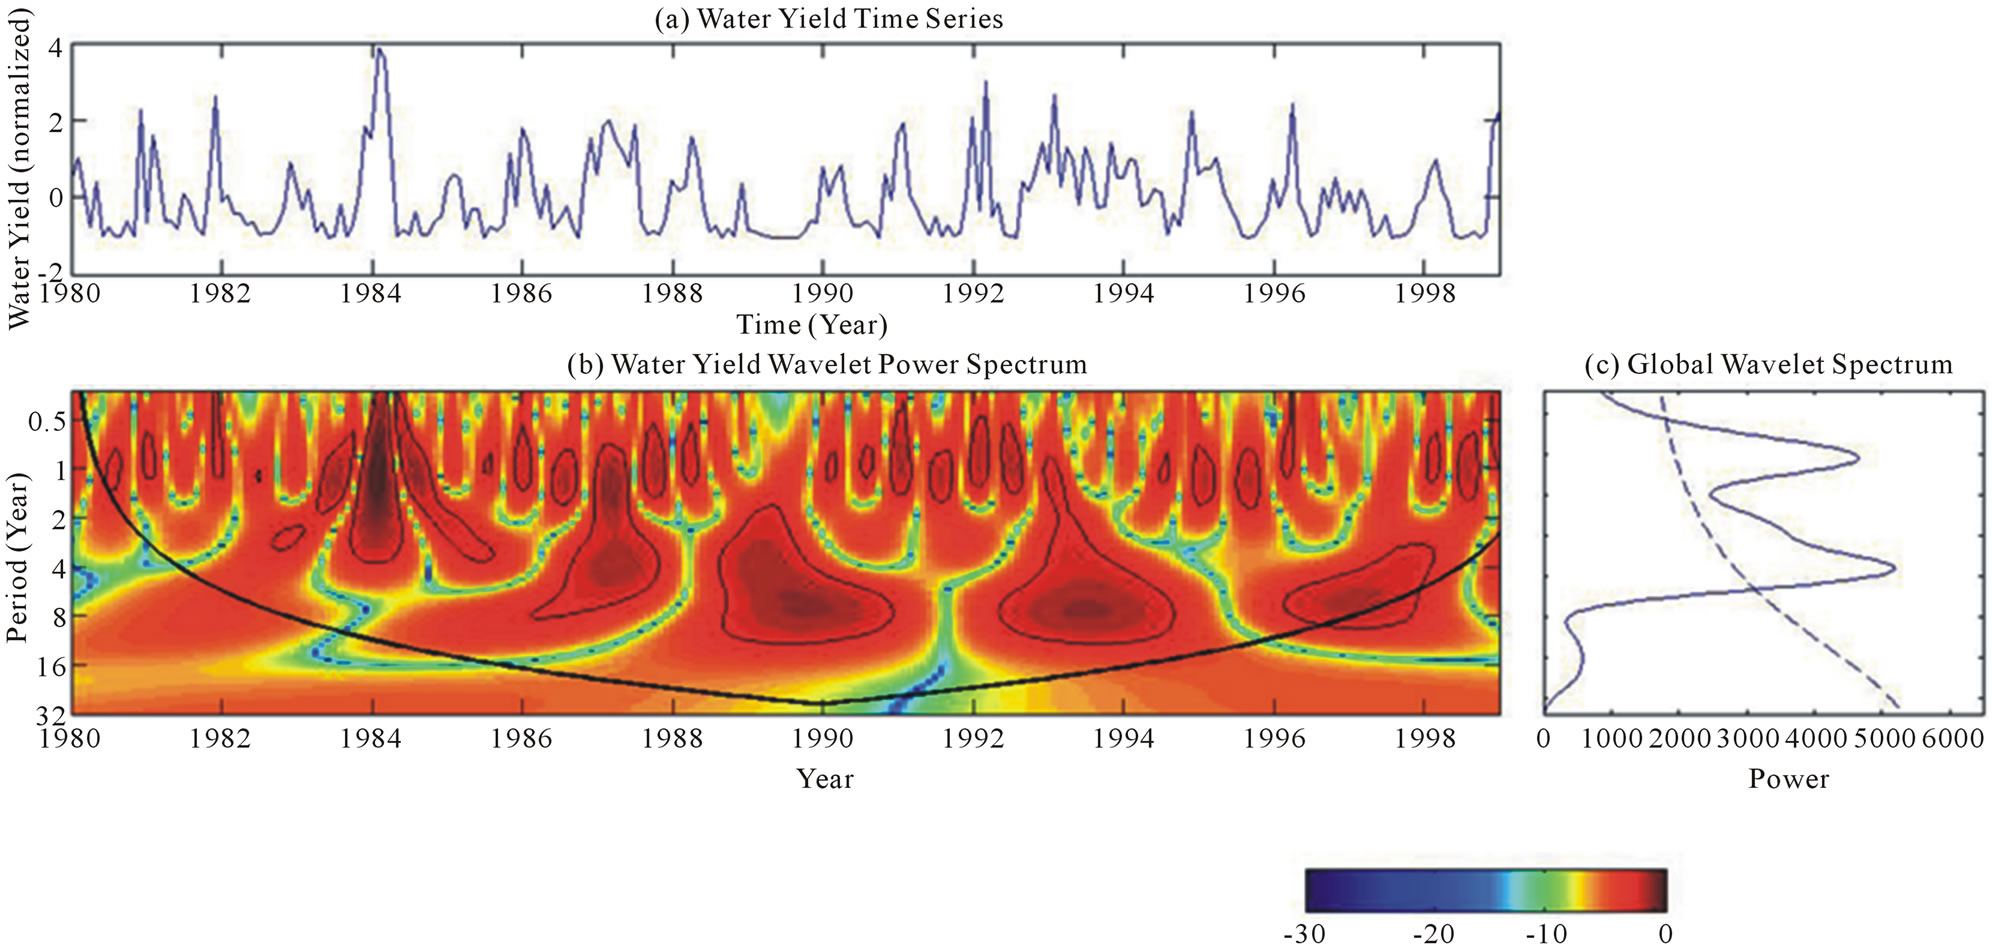 SWAT and Wavelet Analysis for Understanding the Climate Change